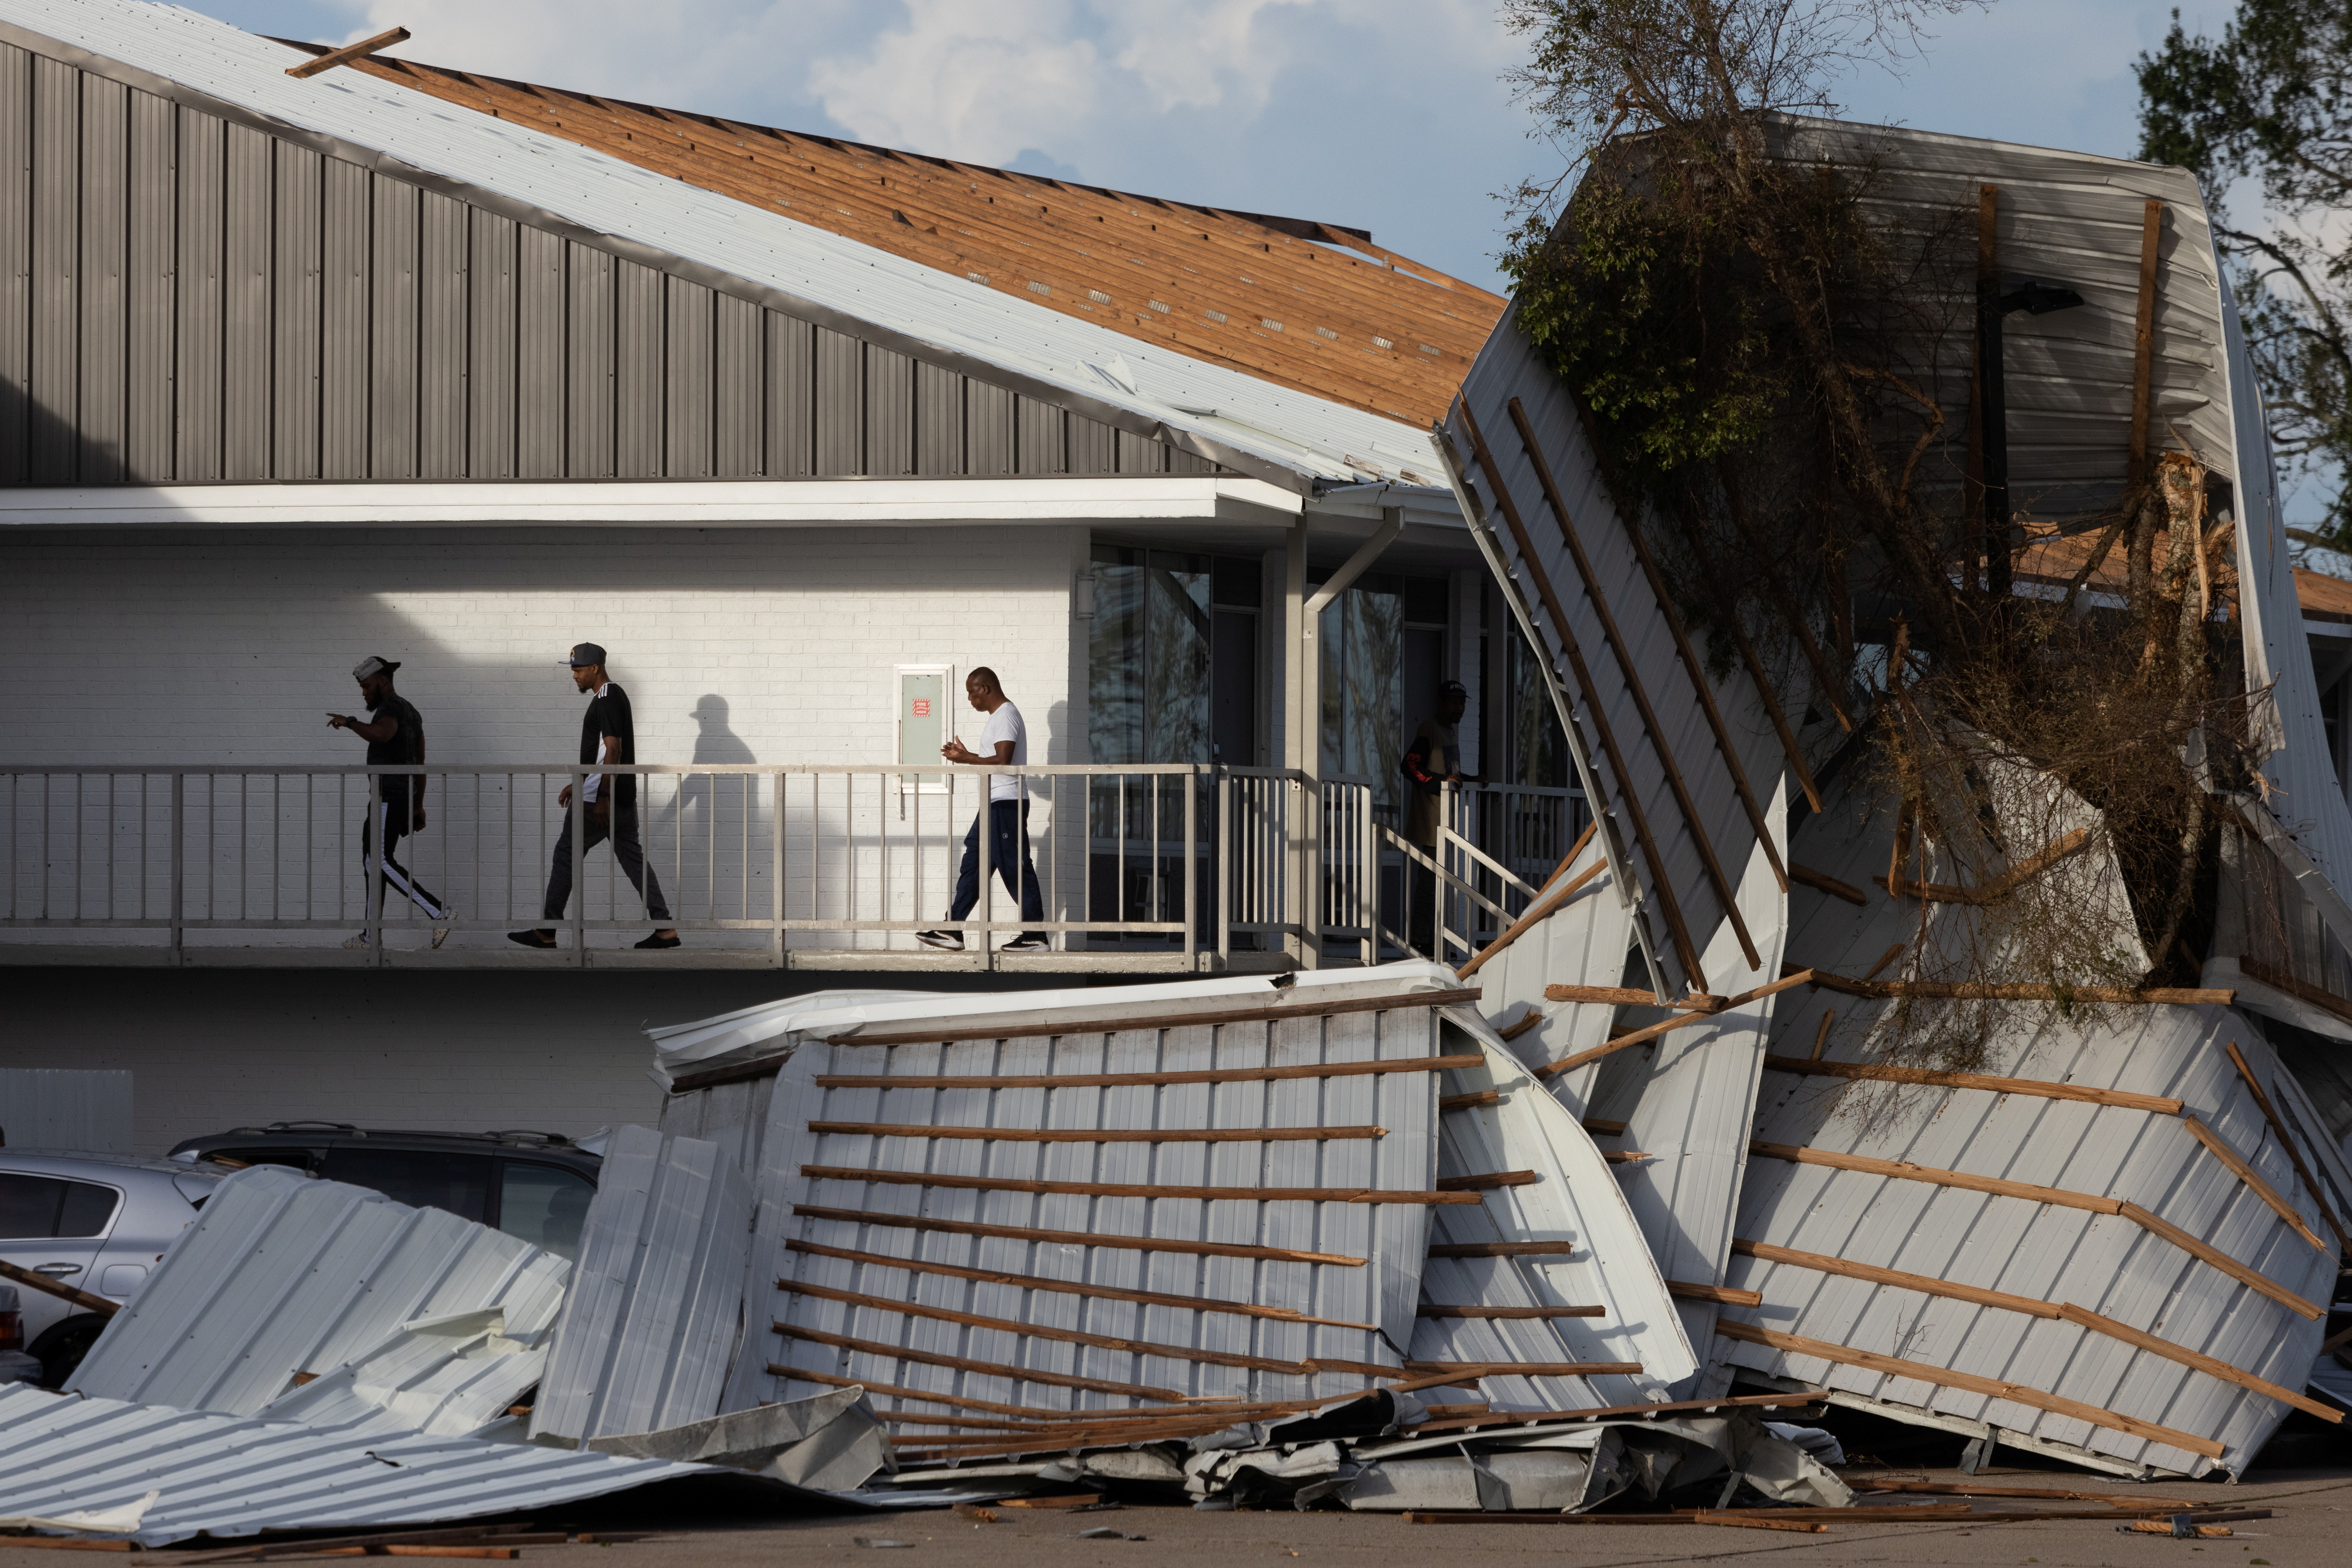 Men walk past the fallen scaffolding outside their hotel rooms in the aftermath of Hurricane Ida in Houma, Louisiana, U.S., August 30, 2021. REUTERS/Adrees Latif